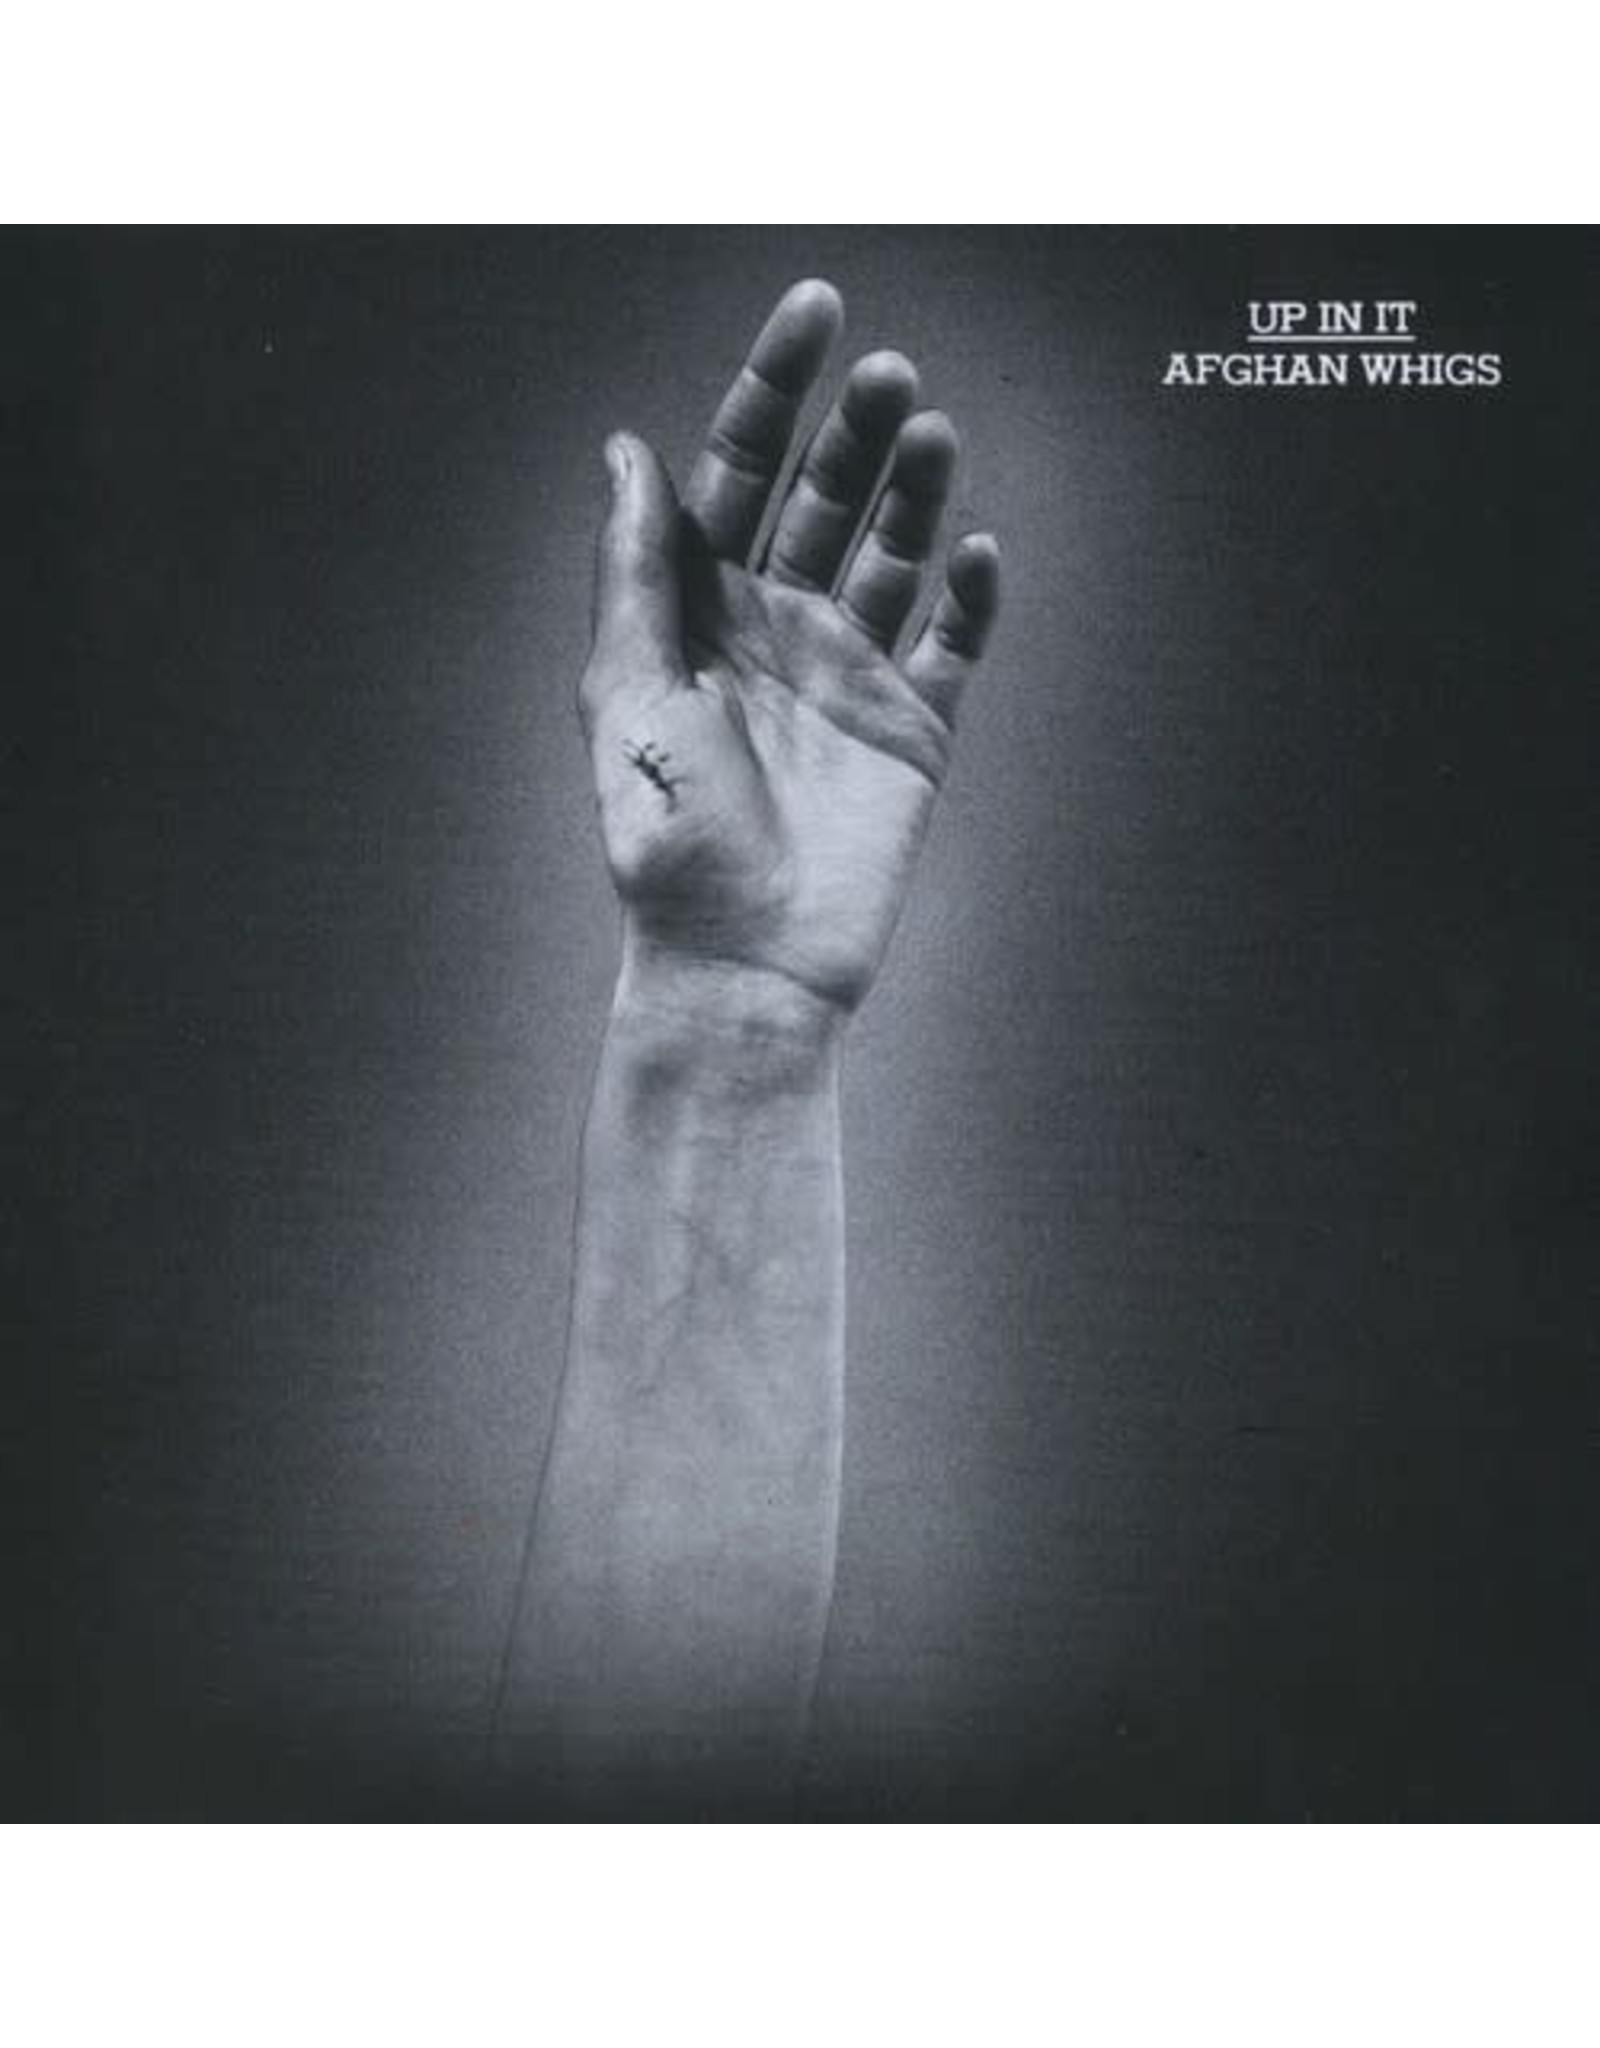 Afghan Whigs / Up In It (Loser Edition 180g Colored Vinyl)